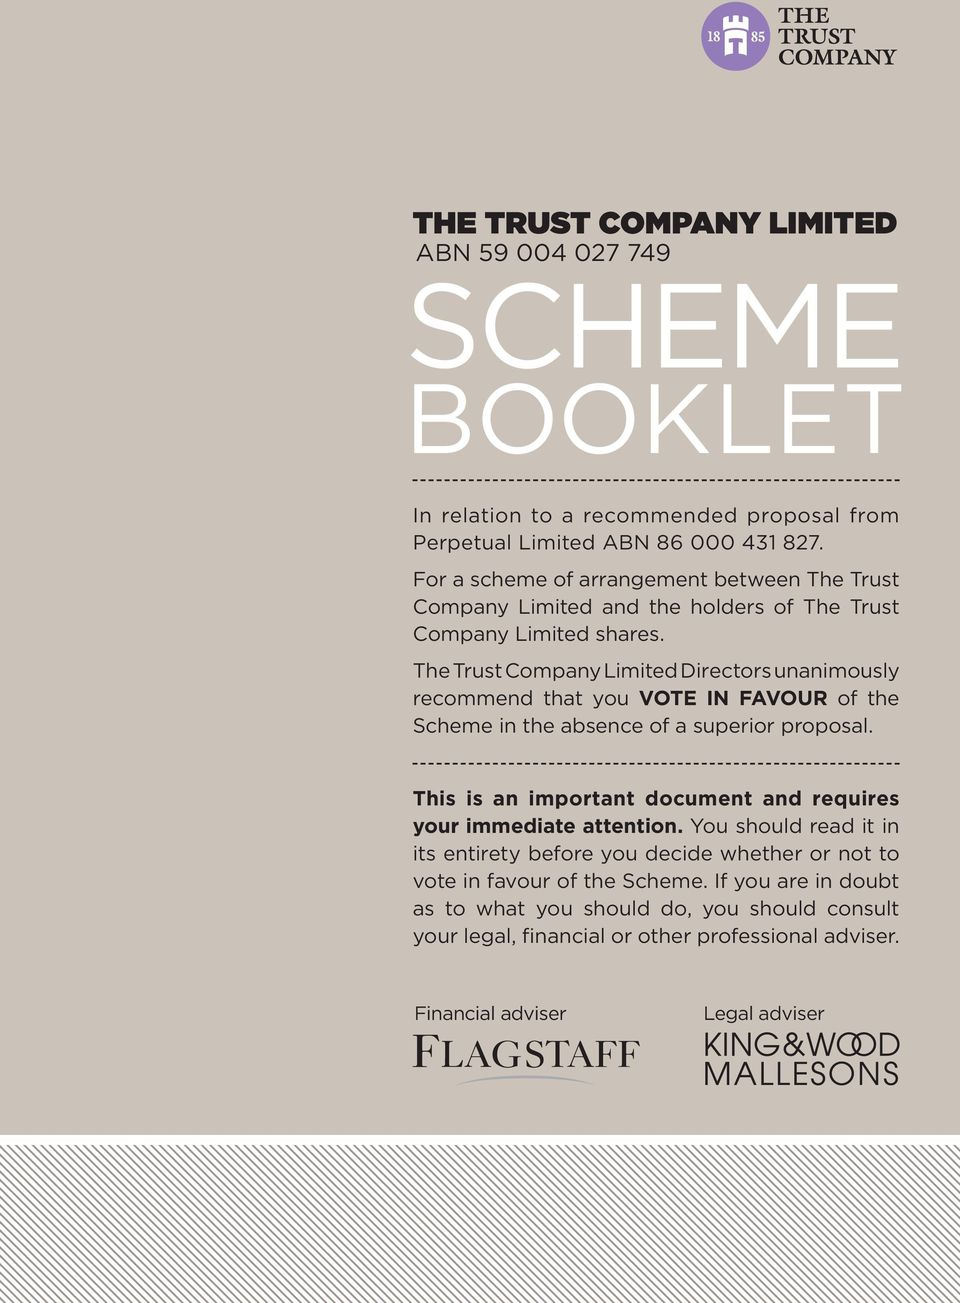 The Trust Company Limited Directors unanimously recommend that you VOTE IN FAVOUR of the Scheme in the absence of a superior proposal.